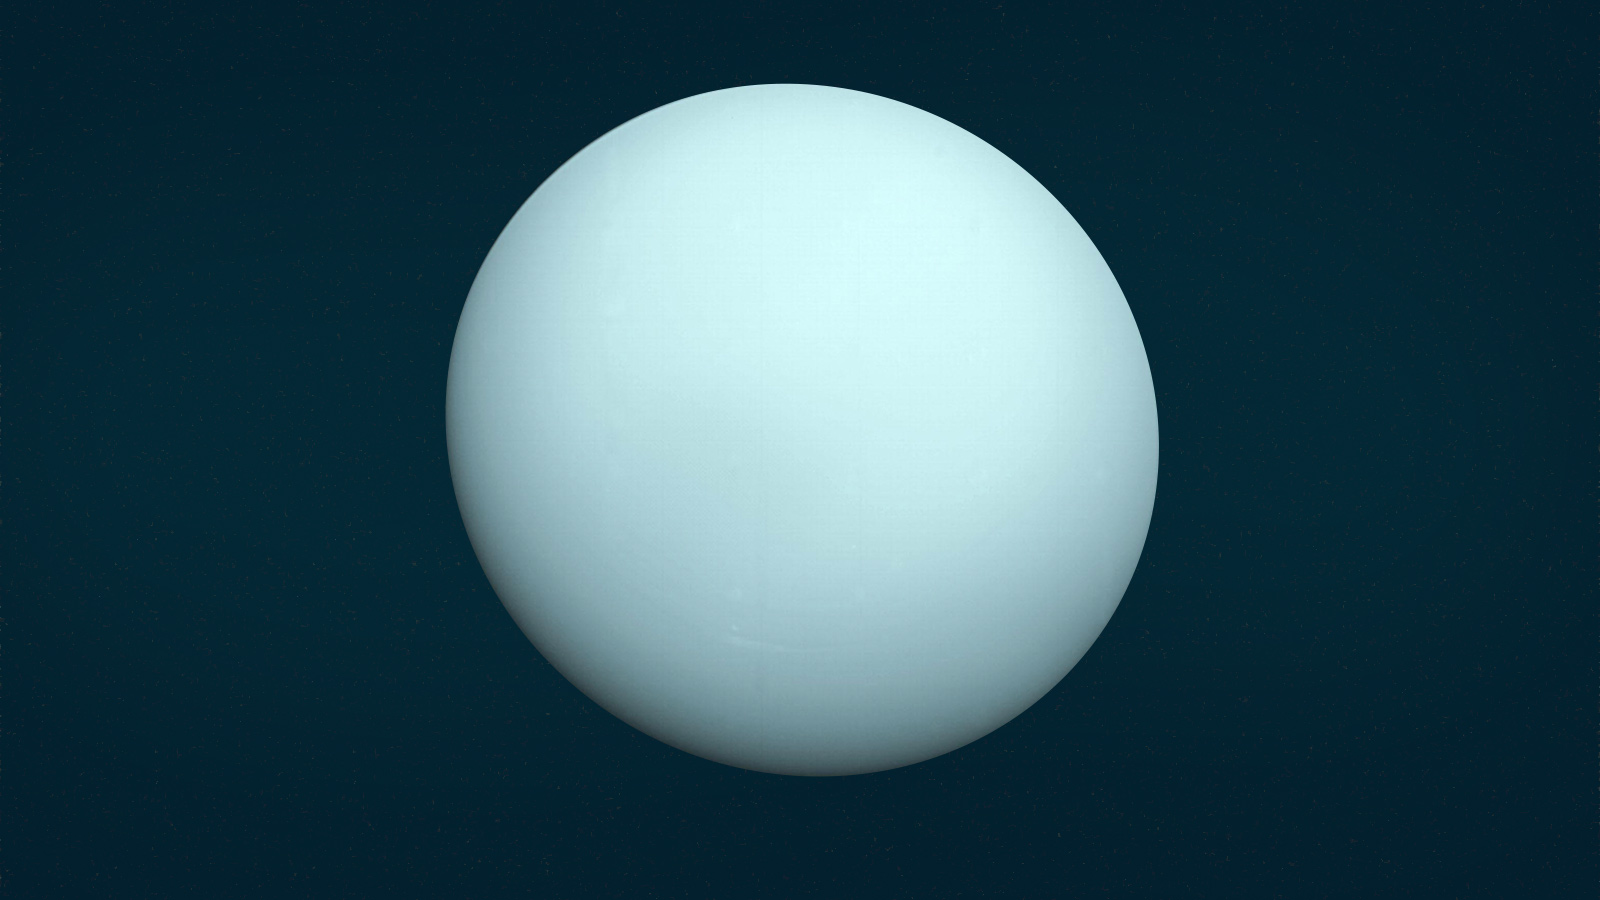 Uranus rotates on its side, it spins horizontally.